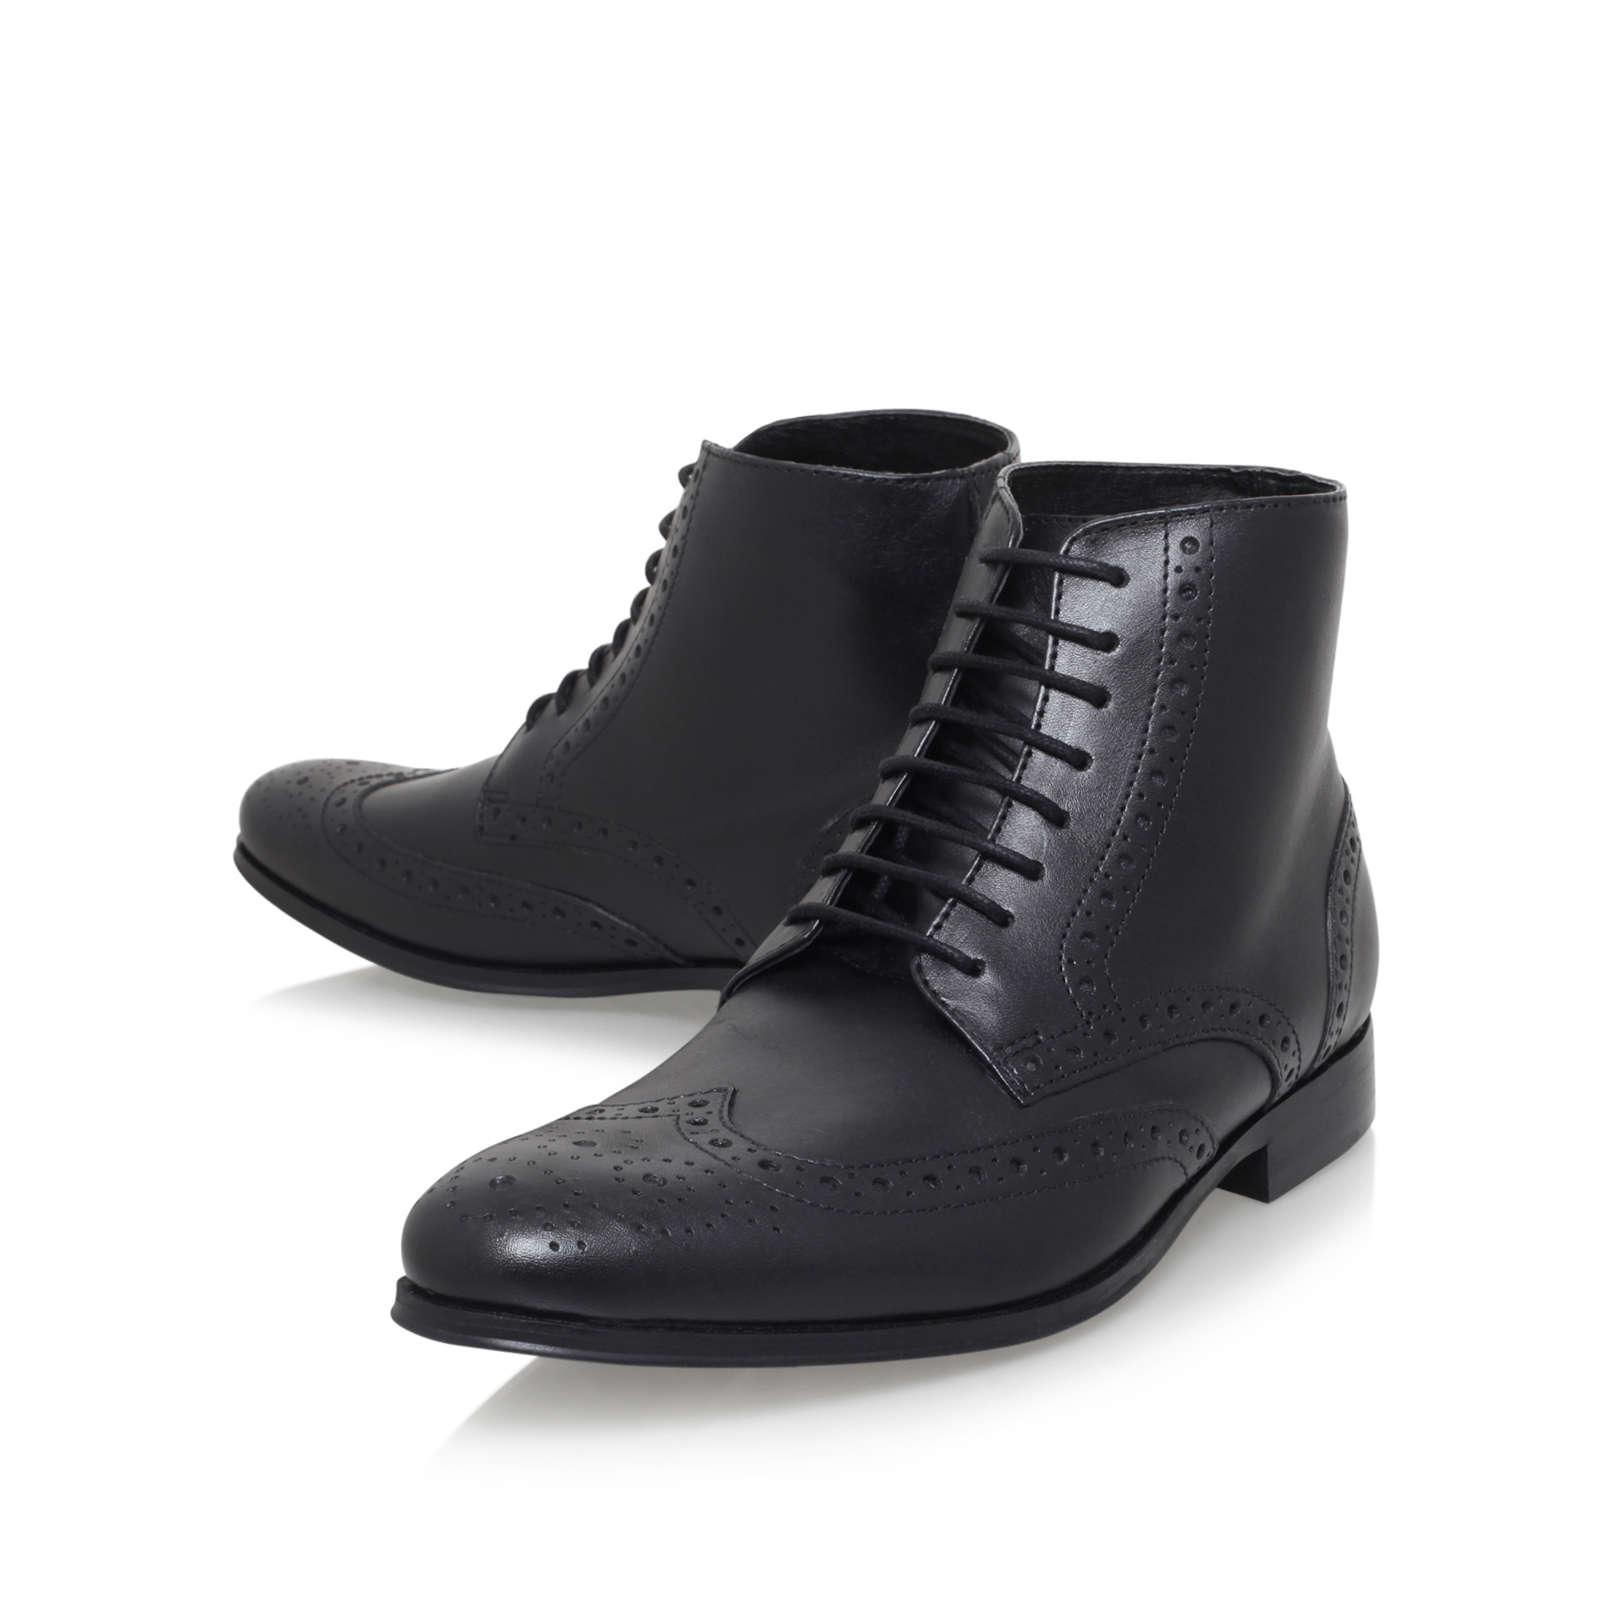 KG by Kurt Geiger Hove Black Leather Lace Up Boots for Men